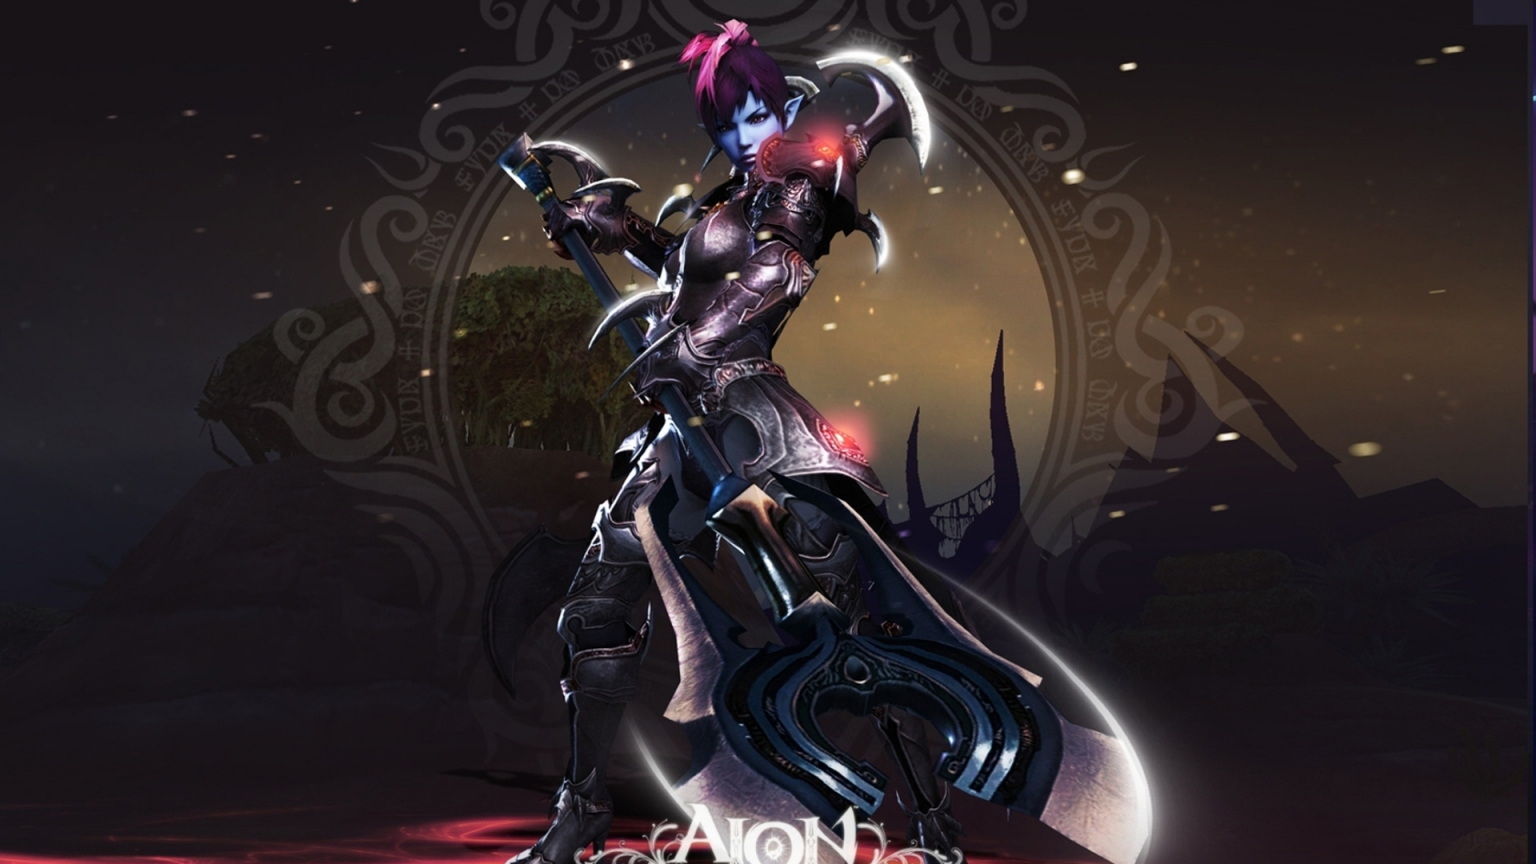 Aion The Tower of Eternity for 1536 x 864 HDTV resolution